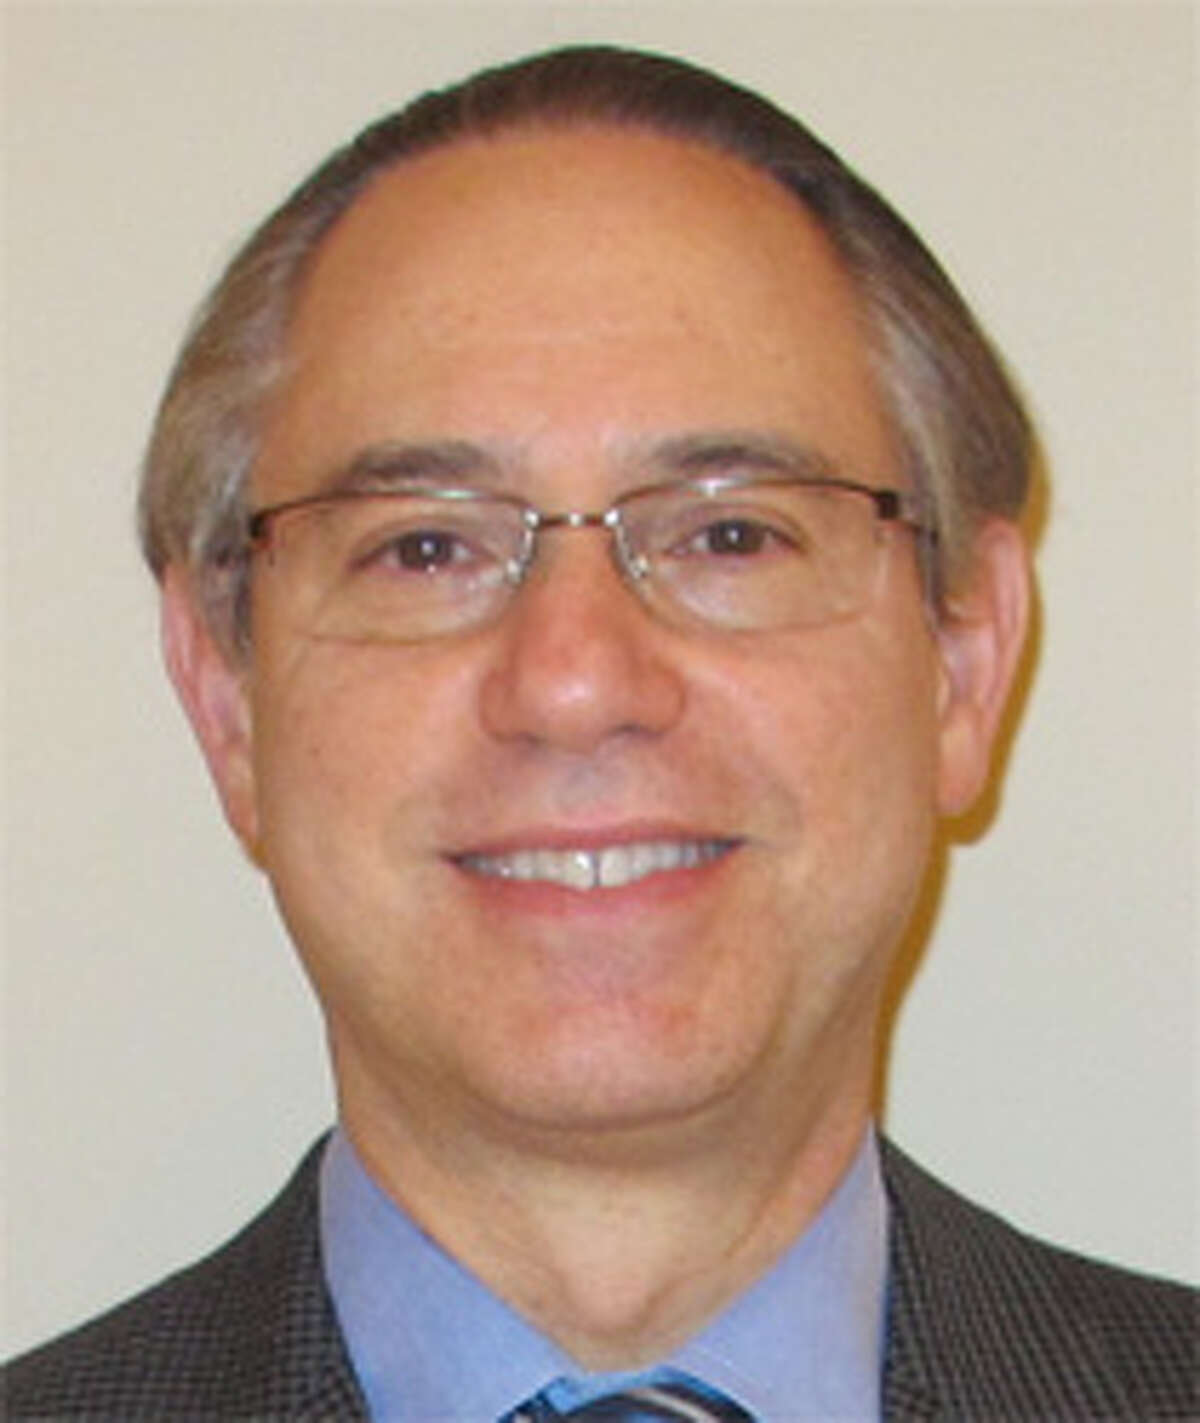 Dr. Mark Feinberg